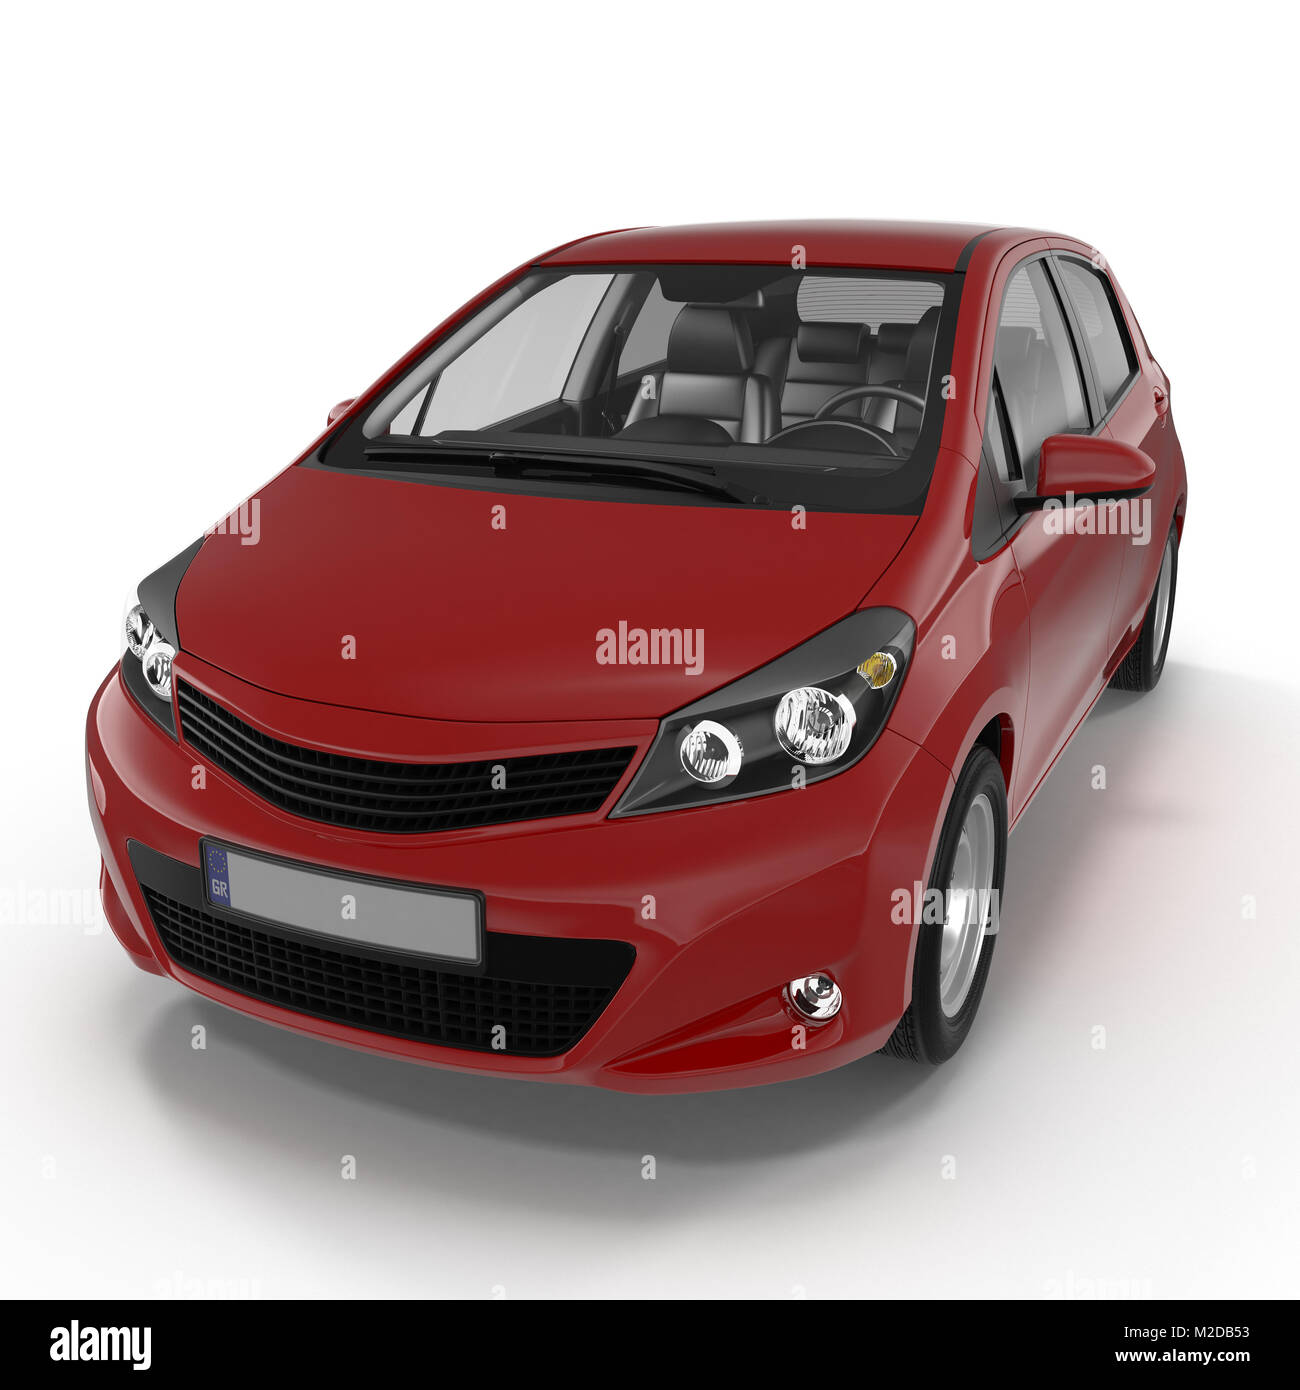 Generic hatchback car on white. 3D illustration - Stock Image